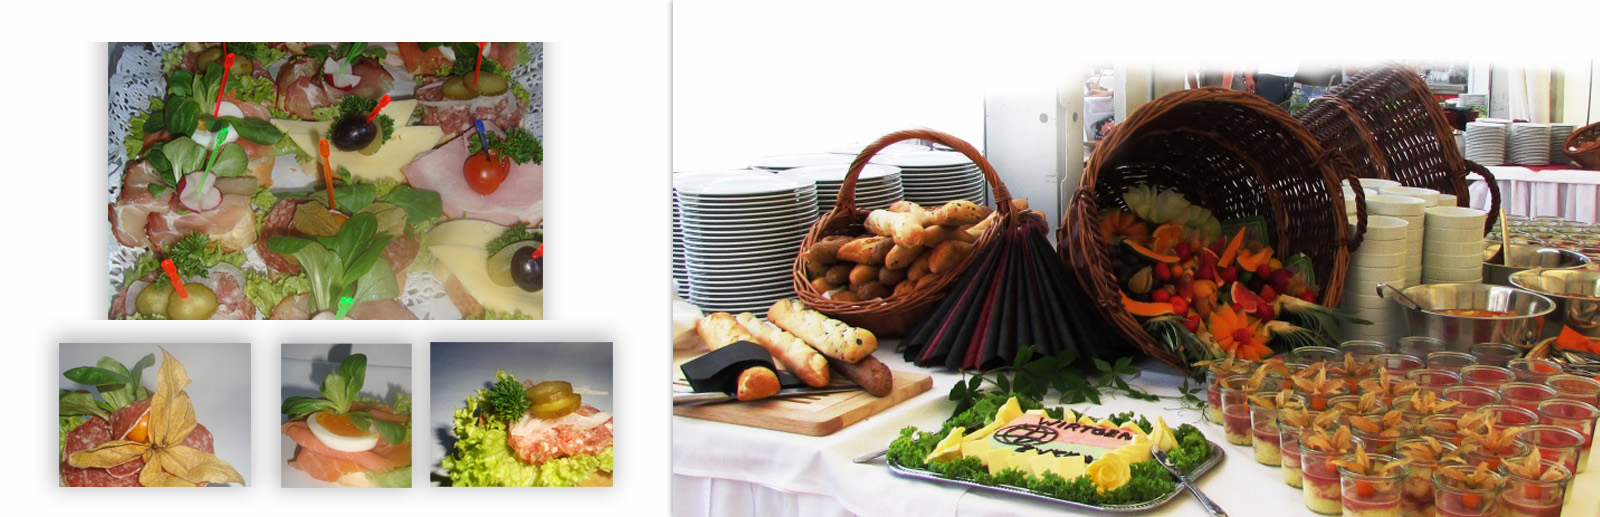 Landhotel Billing, CATERING & PARTYSERVICE